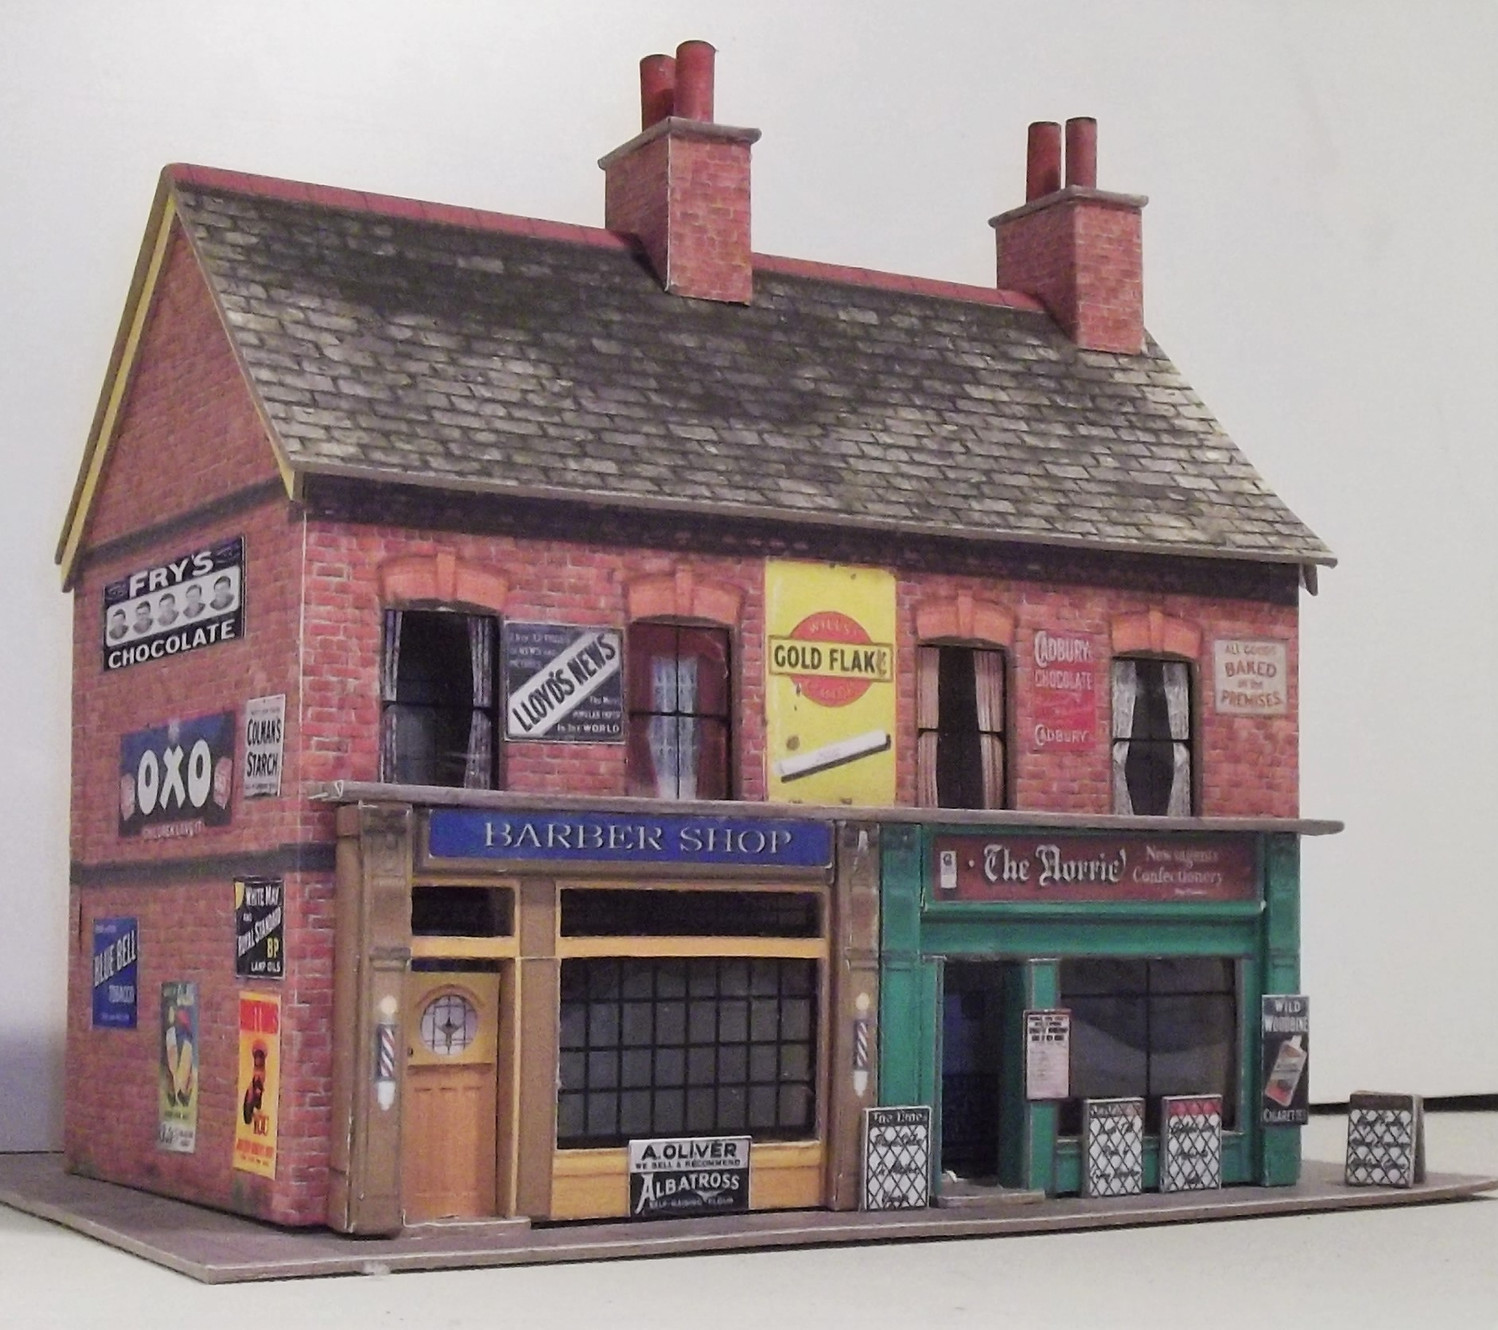 graphic about Ho Scale Buildings Free Printable Plans called Totally free OO Gauge HO Scale Establishing kits Fergus 3dk